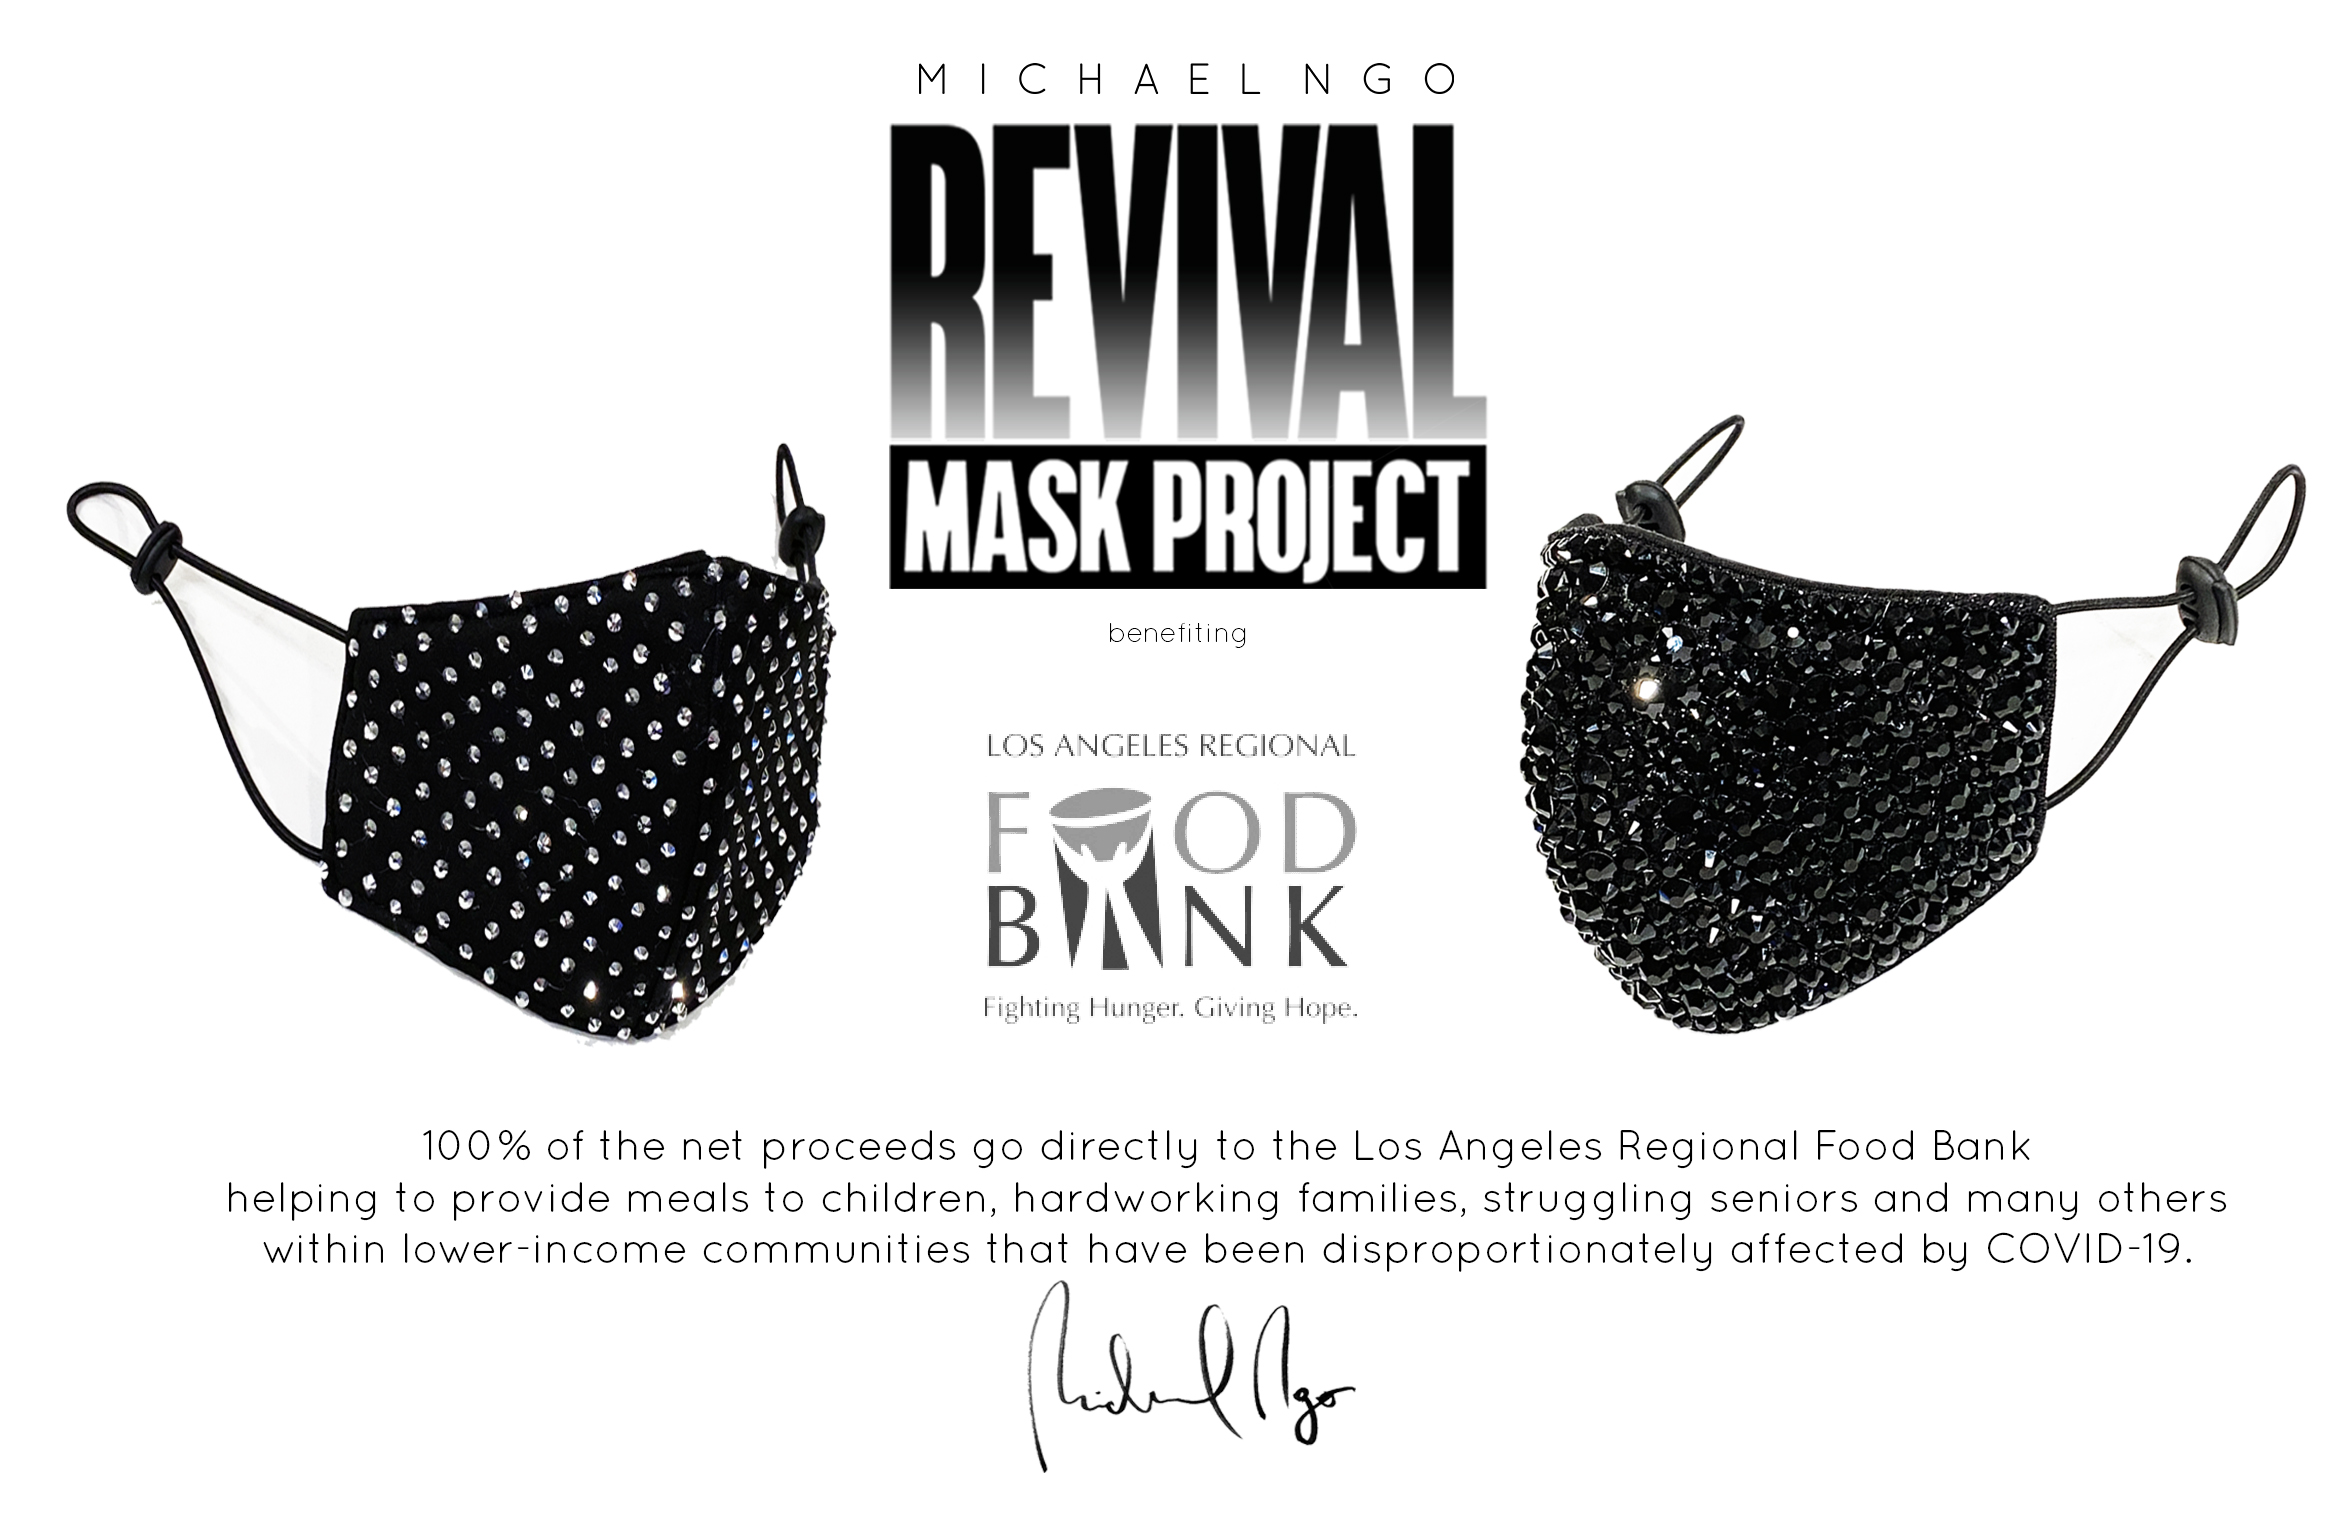 La Fashion Designer Michael Ngo Fundraises 29 500 During Pandemic Los Angeles Regional Food Bank